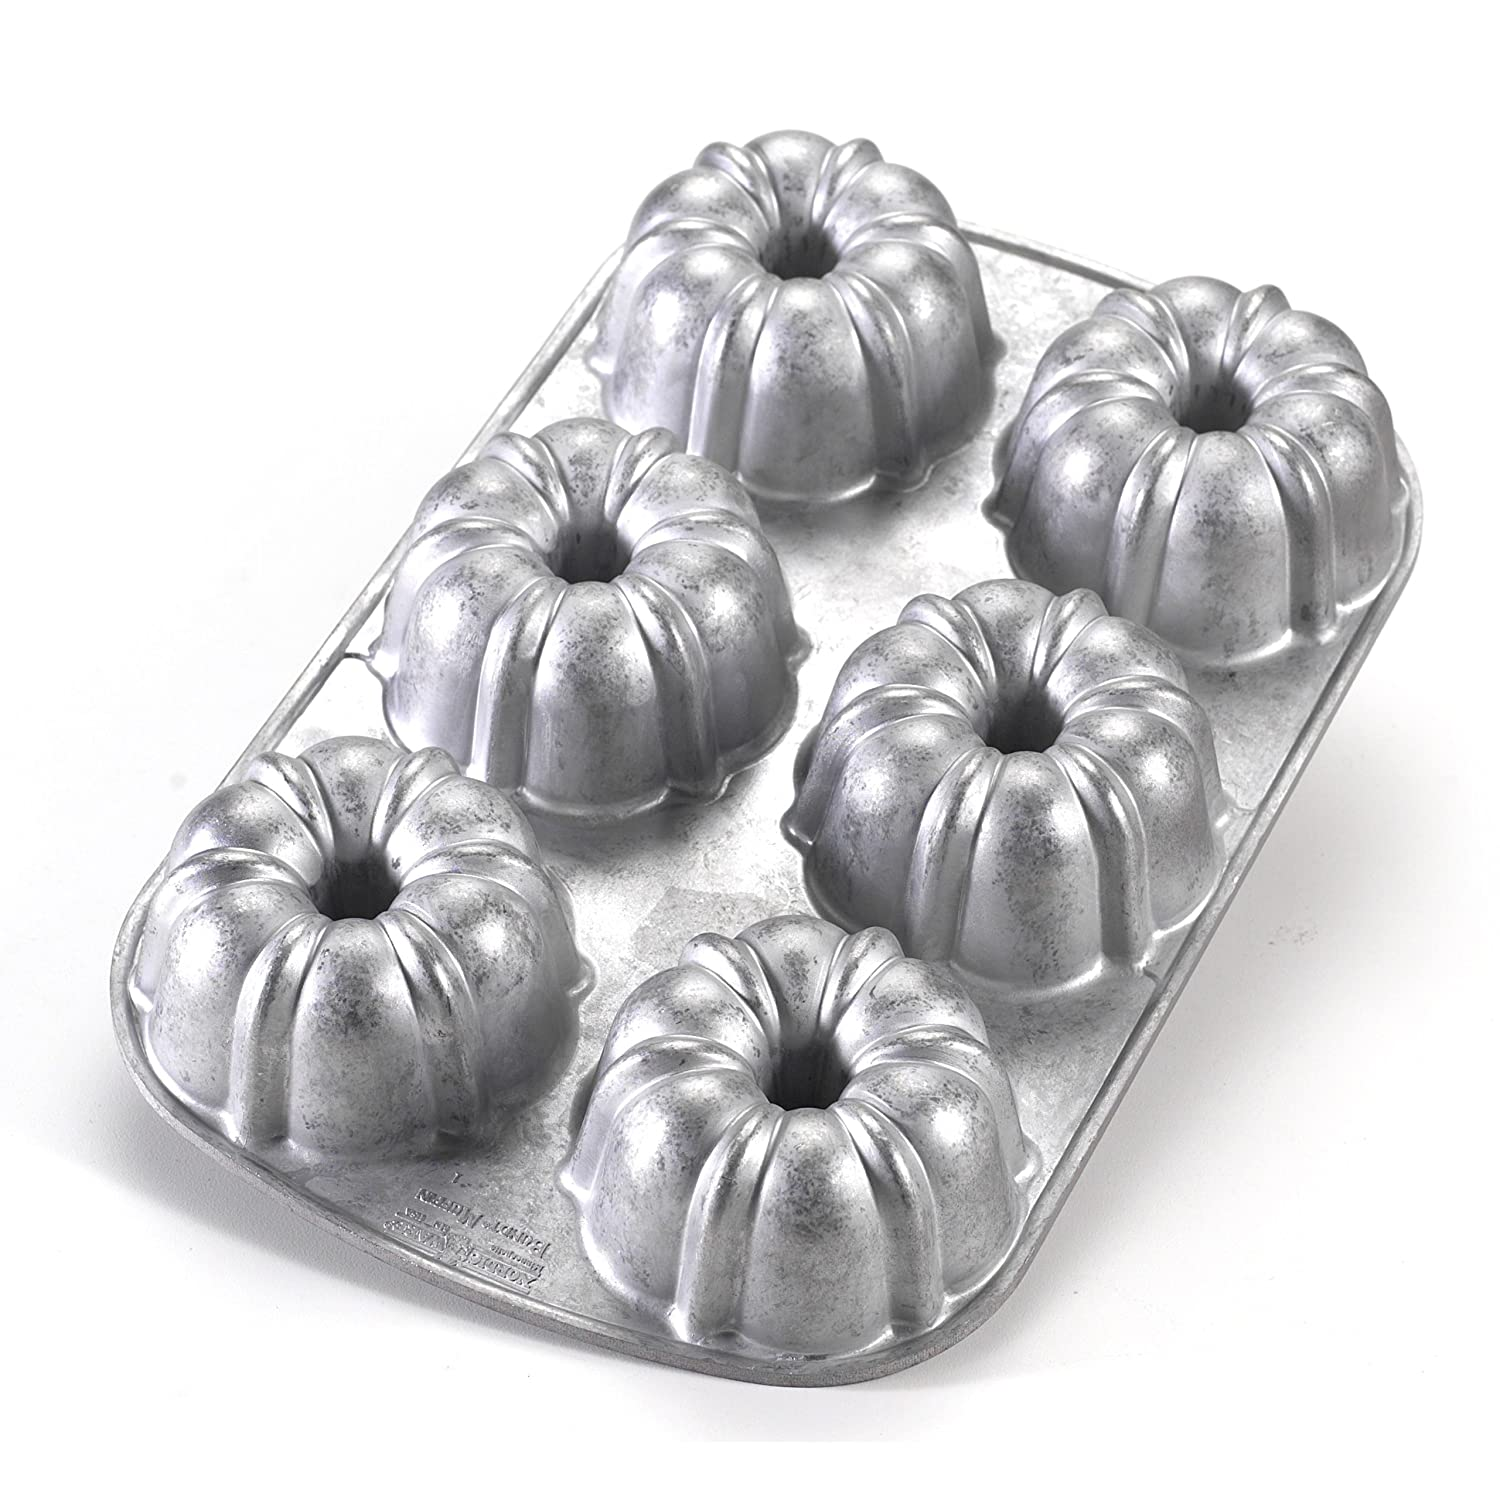 Bundt cake pans for sale - Amazon Com Nordic Ware Commercial Original Bundt Muffin Pan With Premium Non Stick Coating 6 Cavity Kitchen Dining